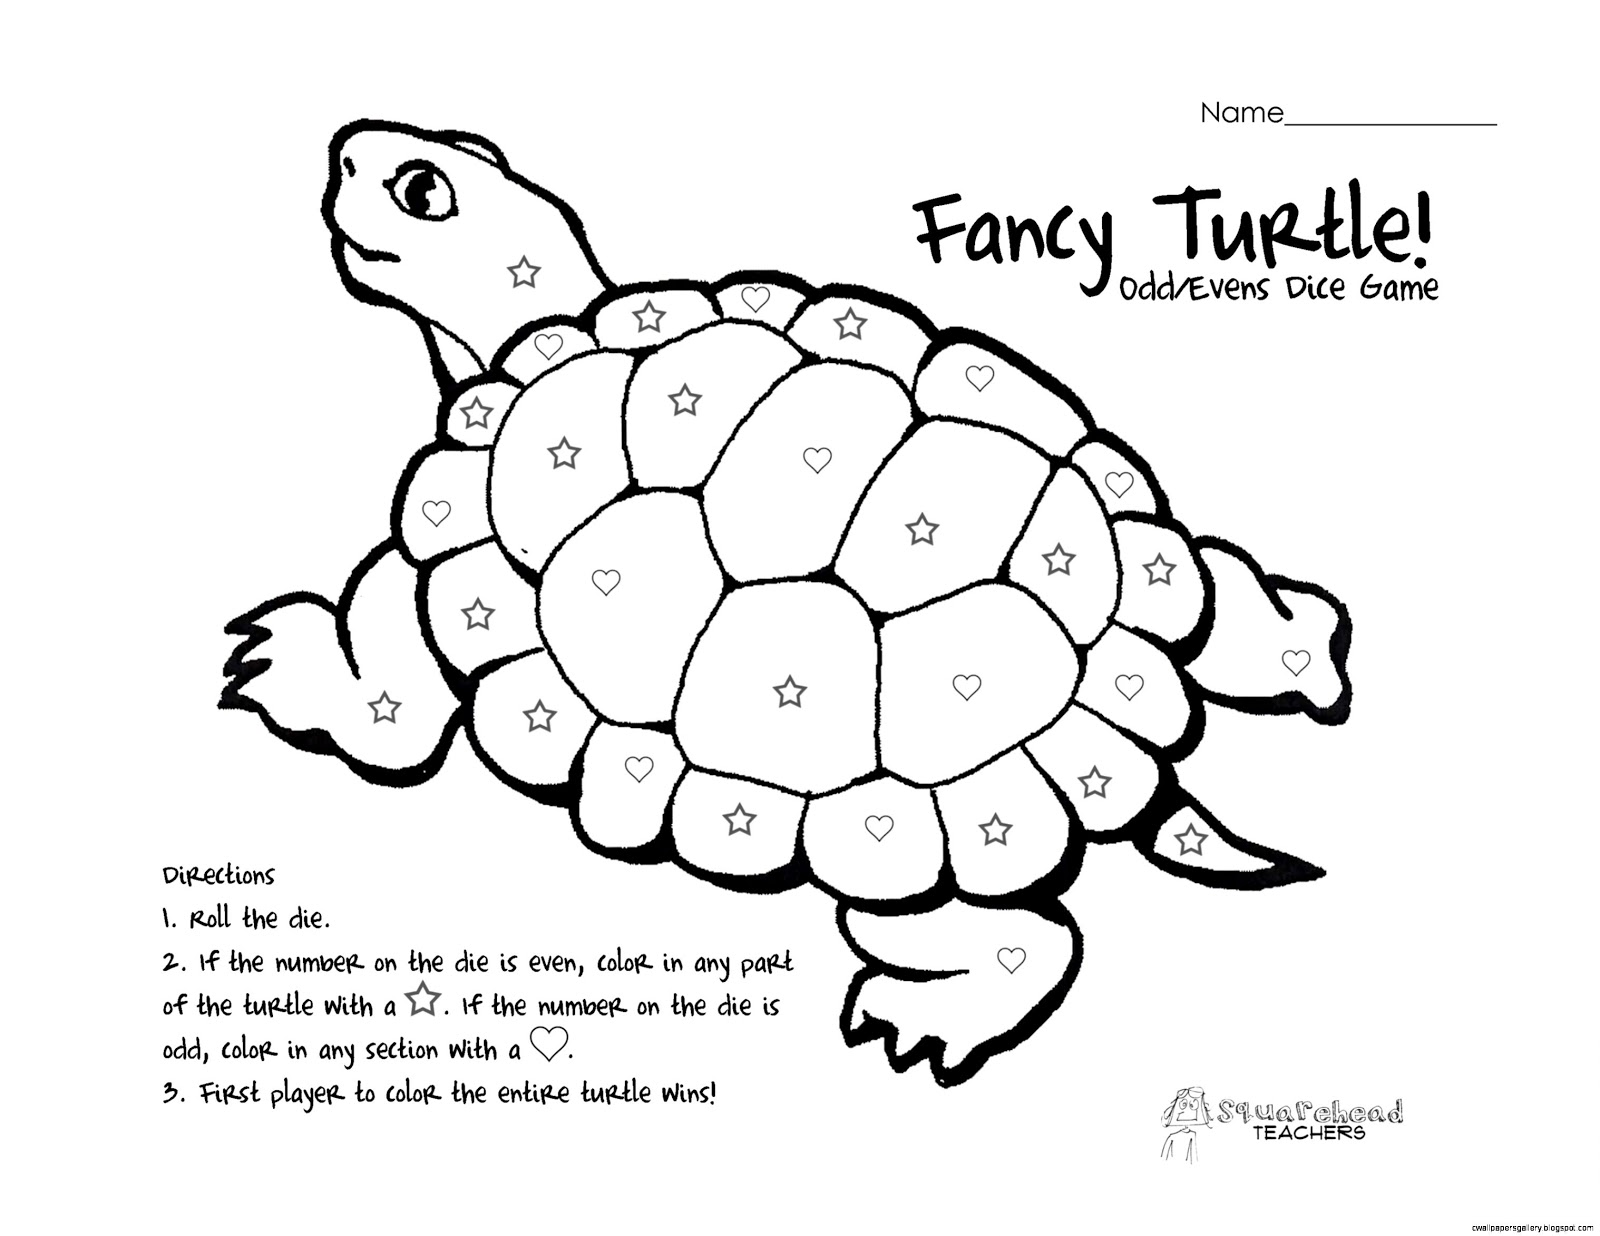 coloring worksheet easy color by number easy for kids while your child follows easy coloring worksheet